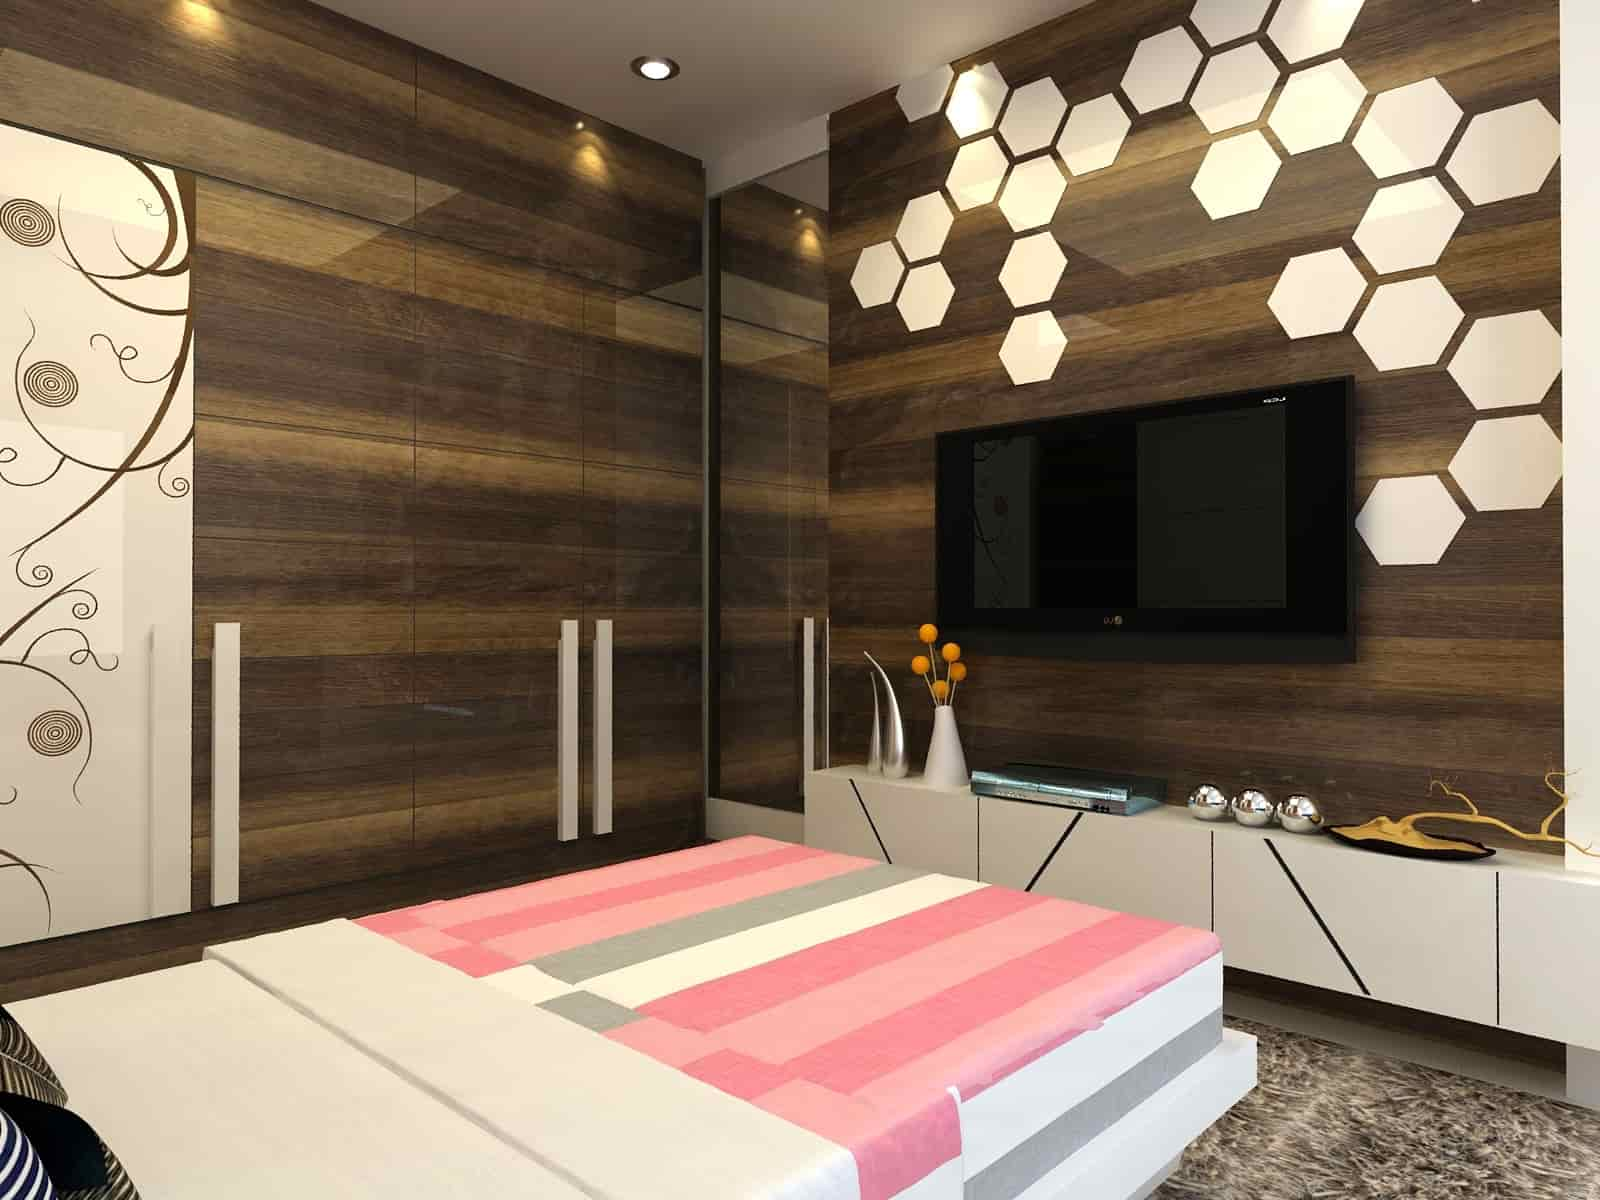 d excellent with interior designer lighting design finest designers layout showroom srz freelance